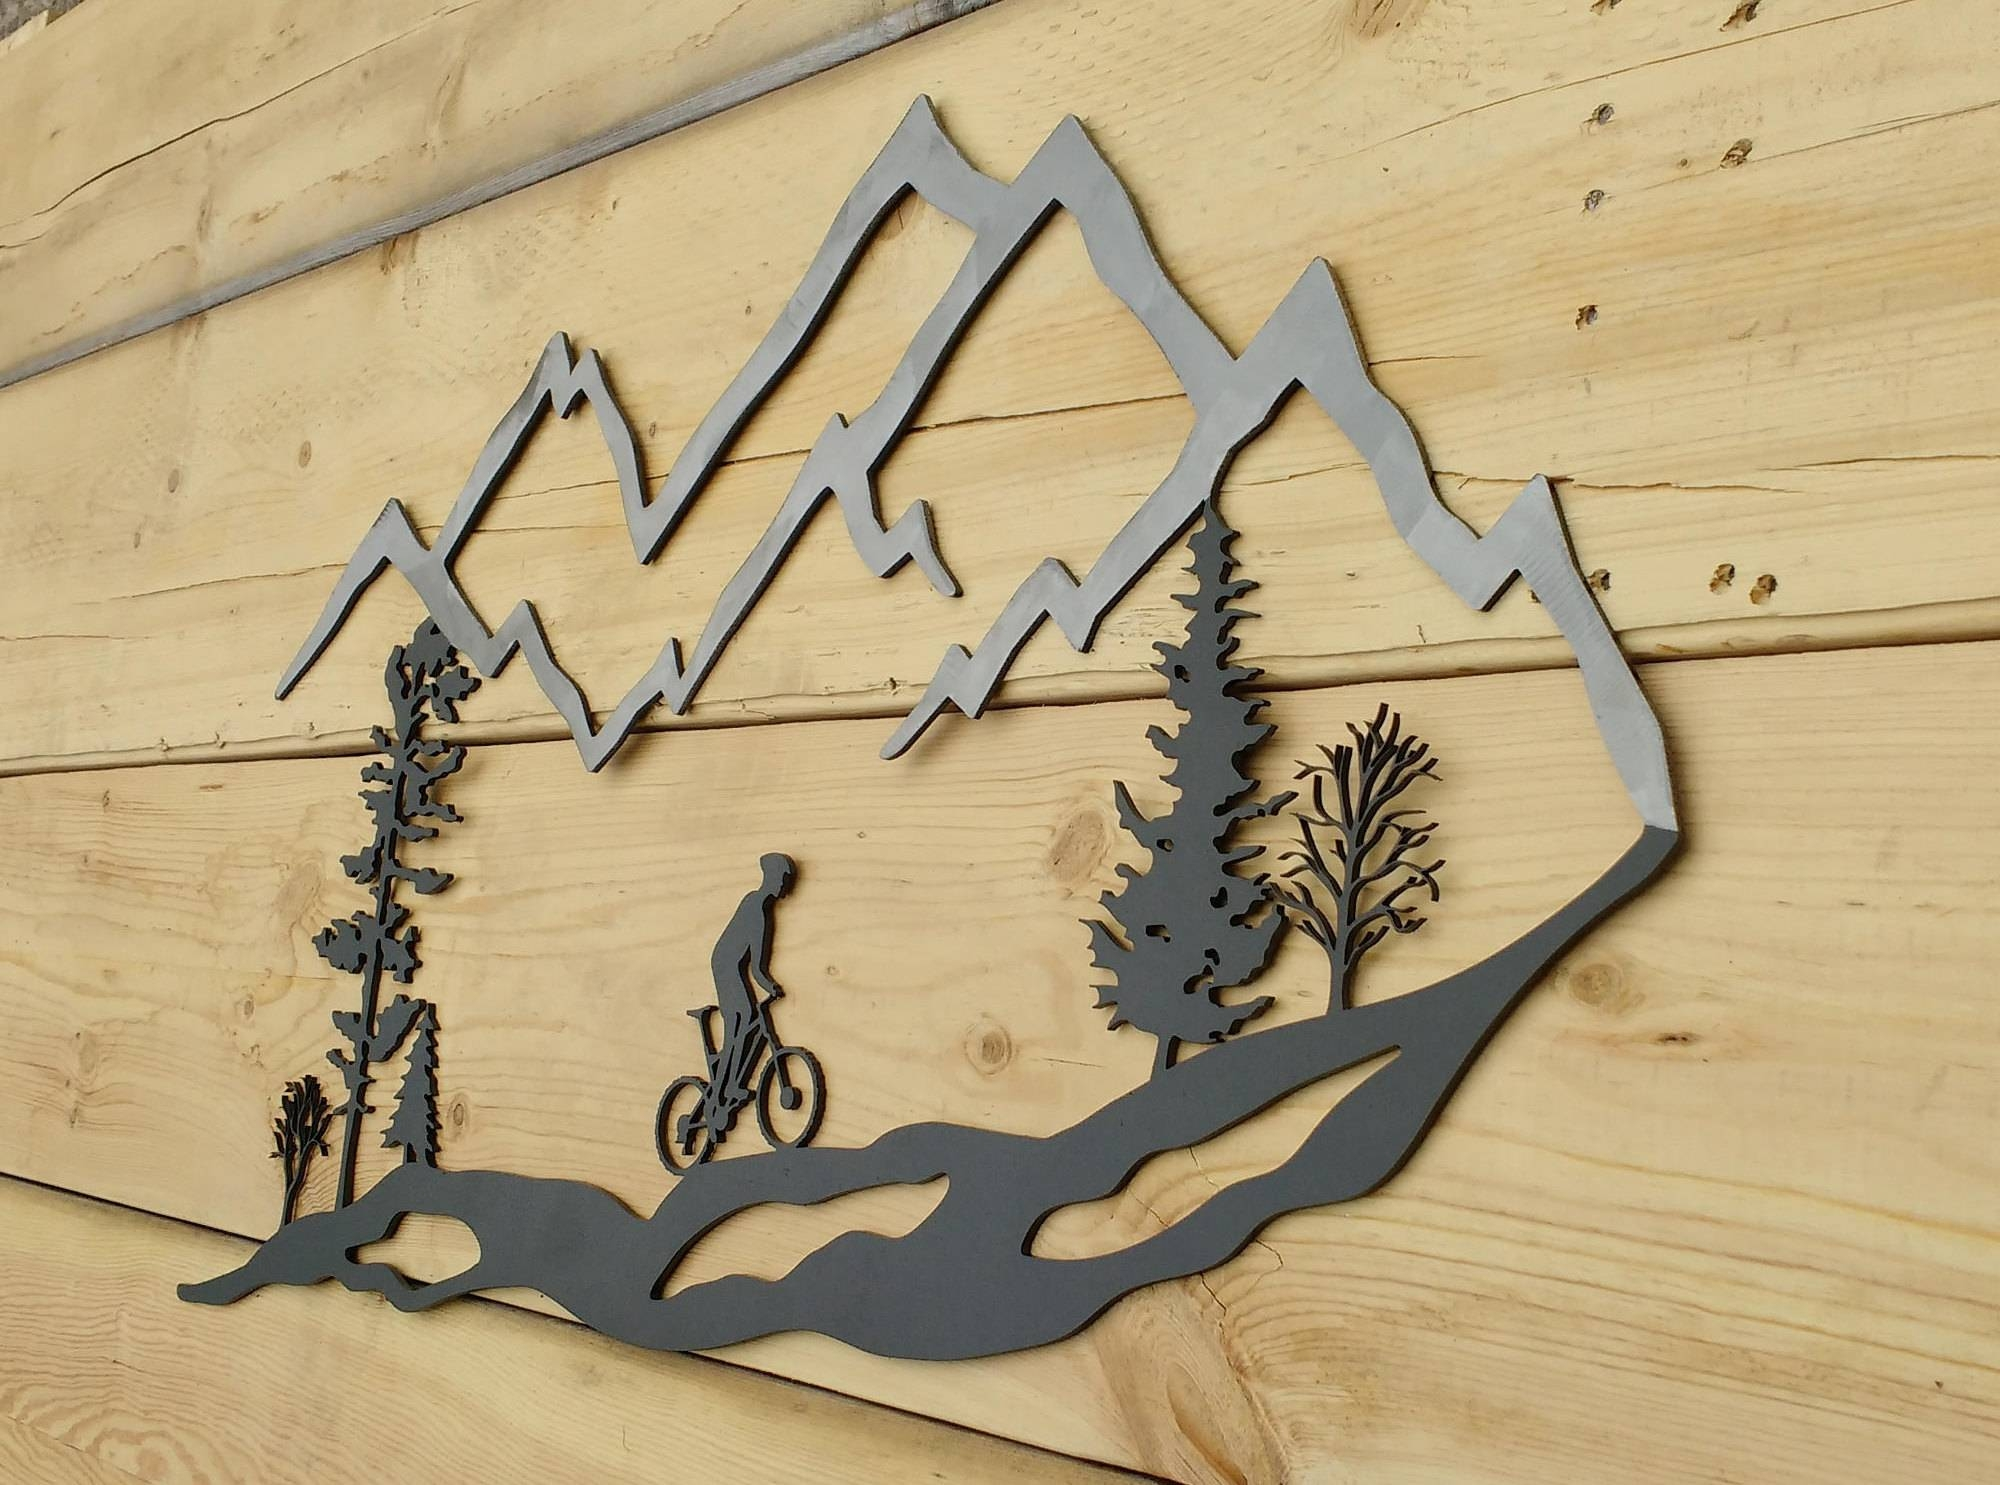 Metal Wall Art Mountain Bike Trees Mountain Bike Mtb Intended For Best And Newest Mountains Metal Wall Art (View 8 of 20)